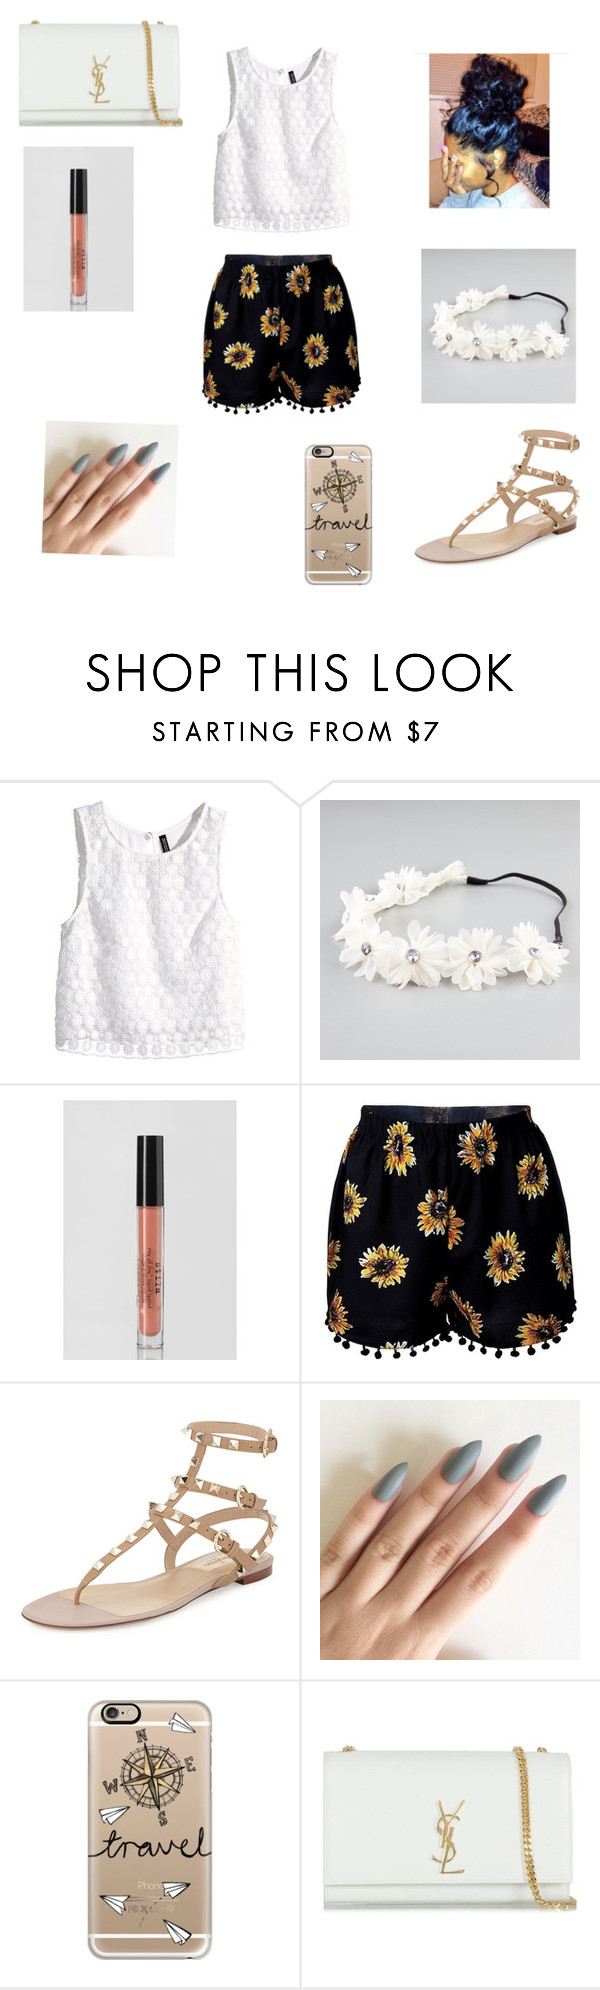 """""""#Spring is here!!!"""" by madypooh ❤ liked on Polyvore featuring H&M, Full Tilt, Stila, Valentino, Casetify and Yves Saint Laurent"""